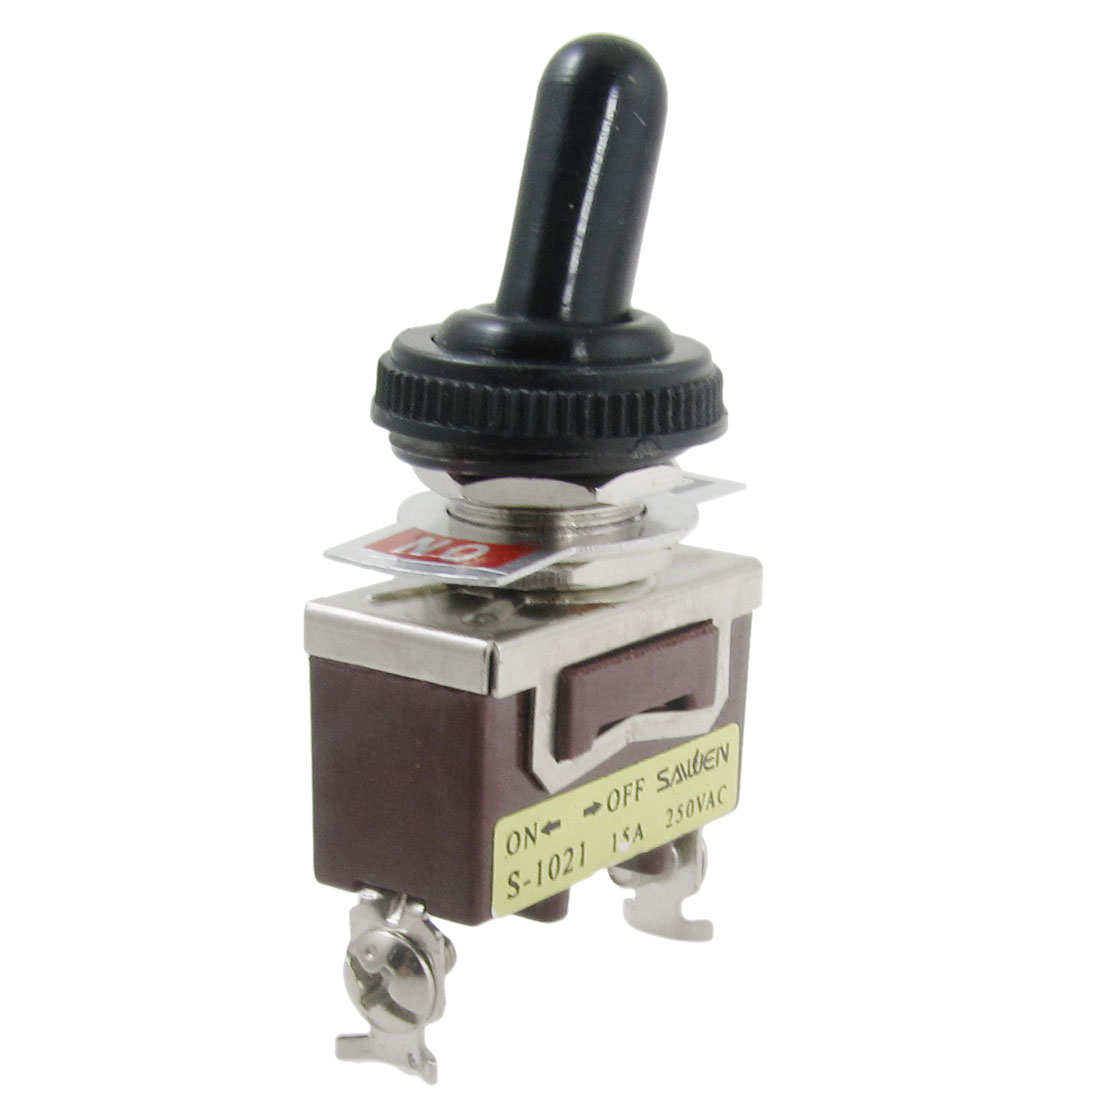 AC 250V 15A Amps ON/OFF 2 Position SPST 2 Screw Terminals Toggle Switch with Waterproof Boot